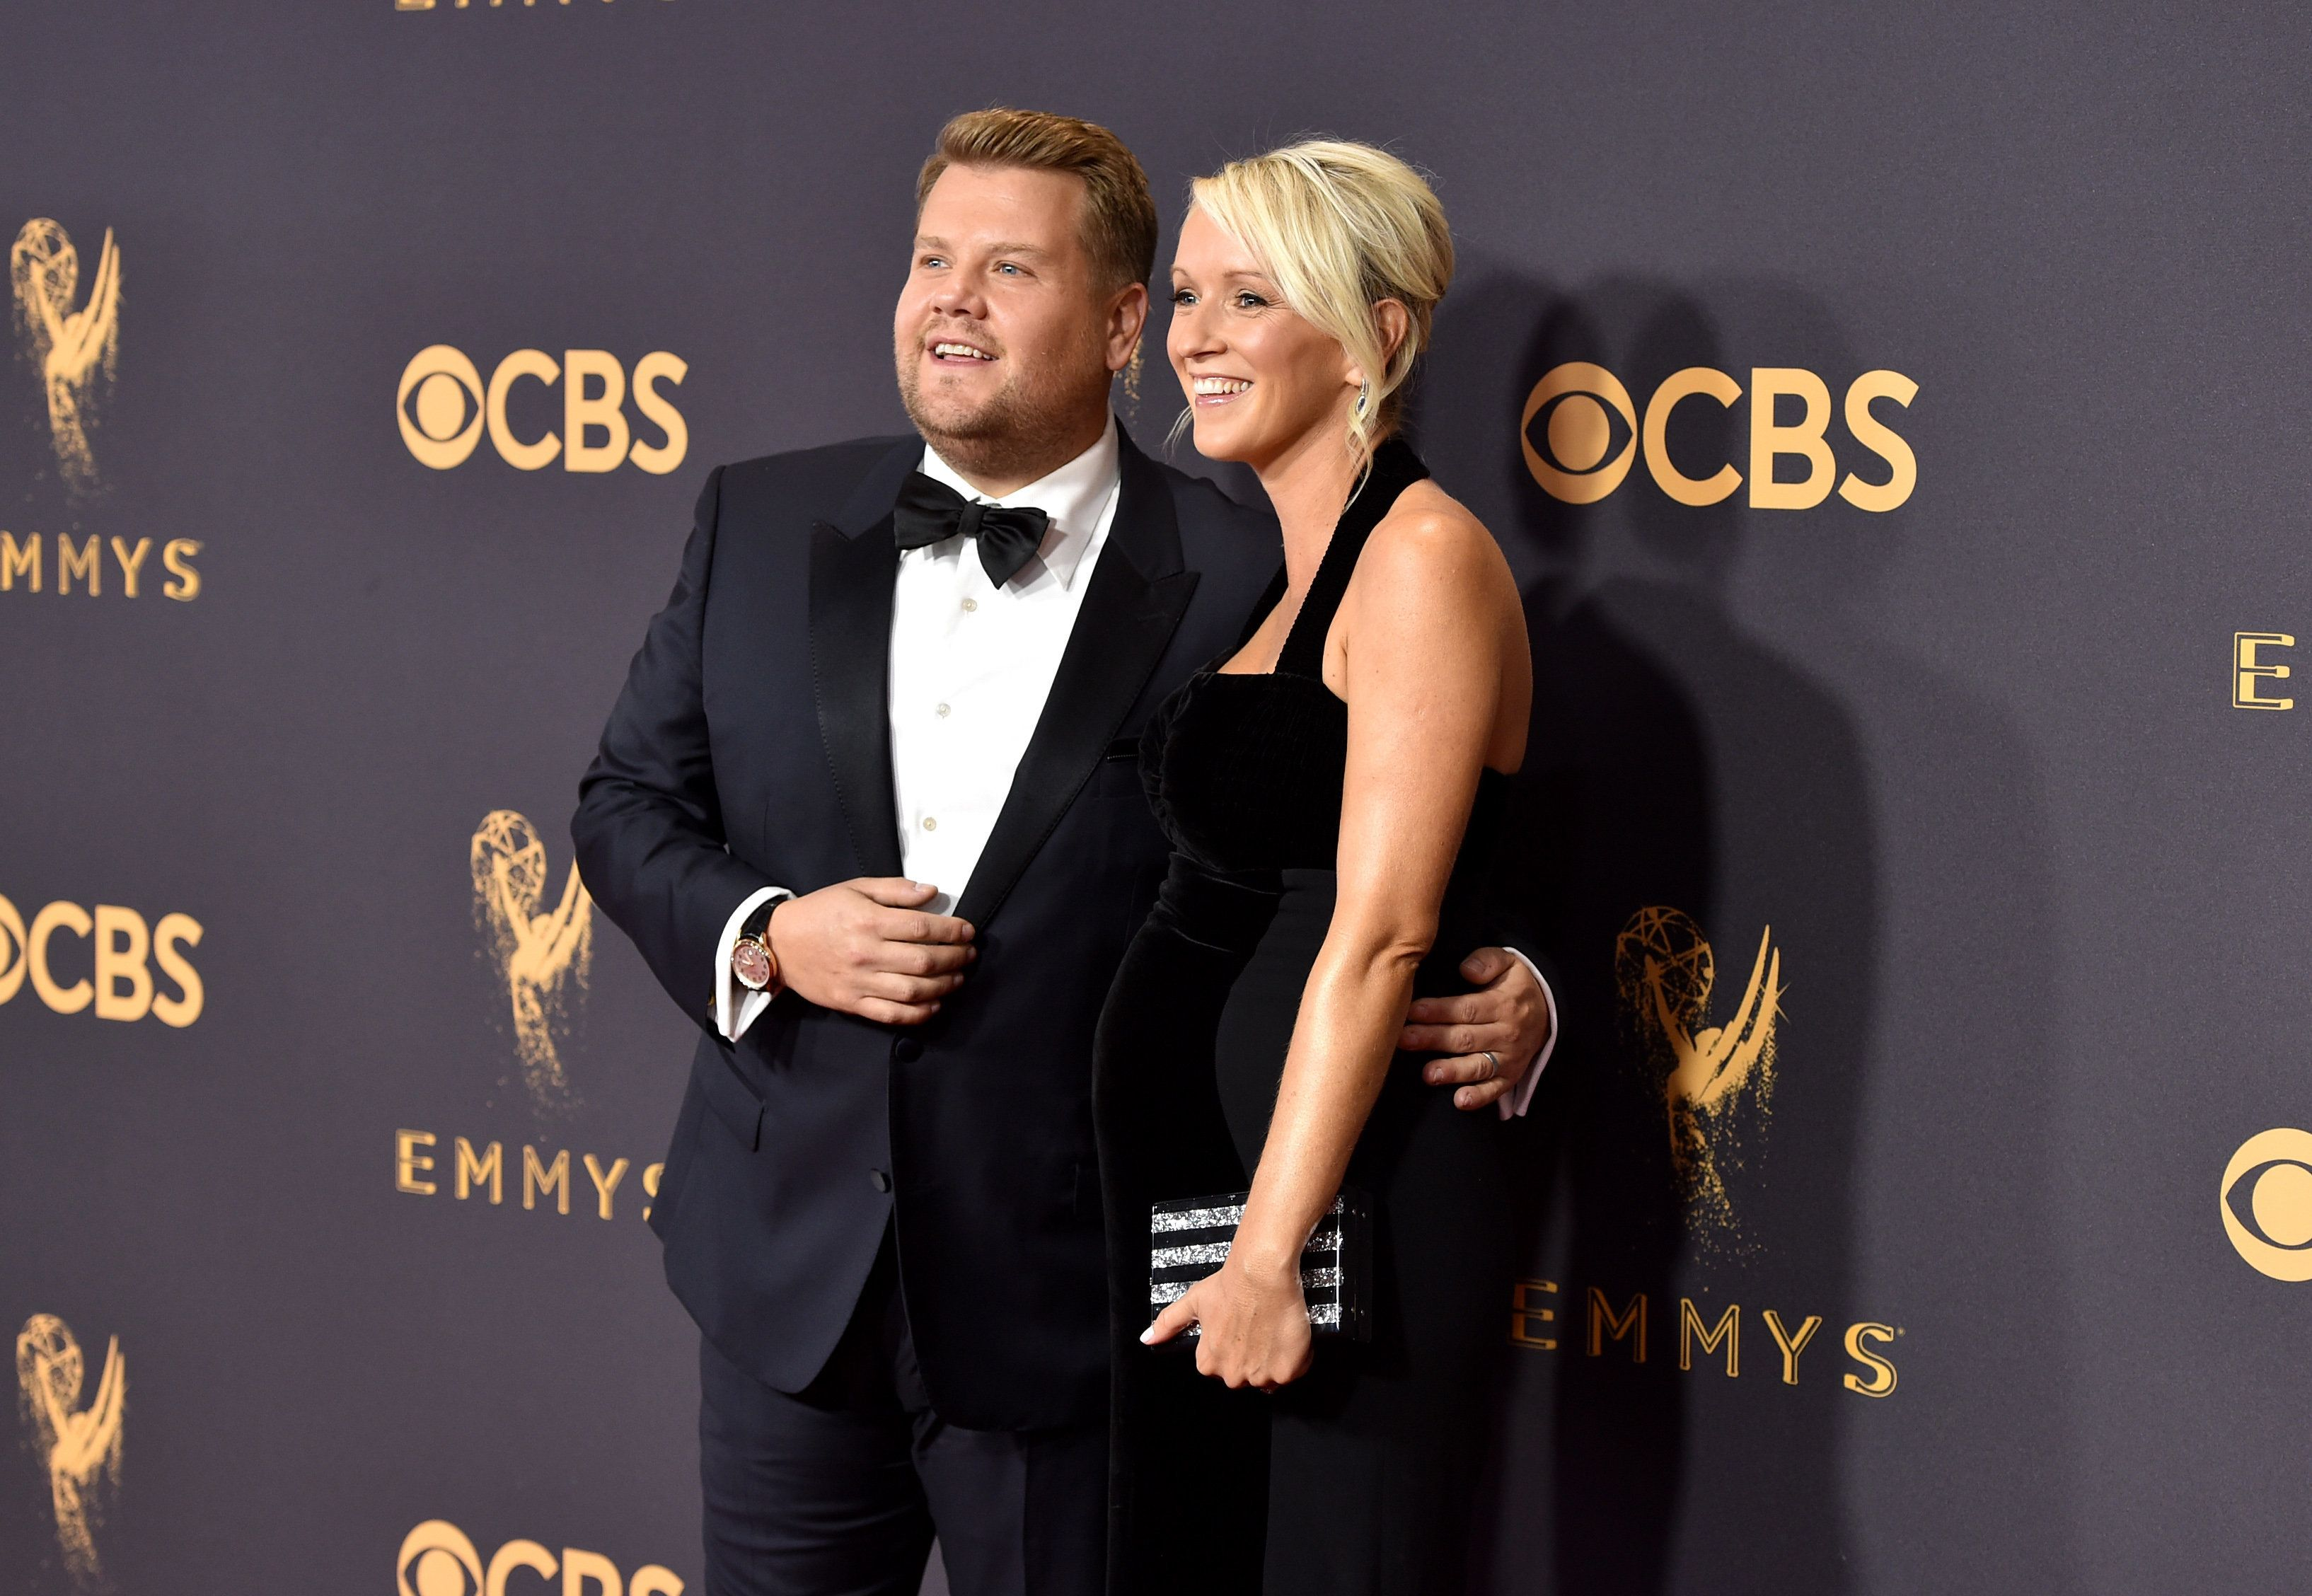 James Corden almost named newborn daughter Beyoncé